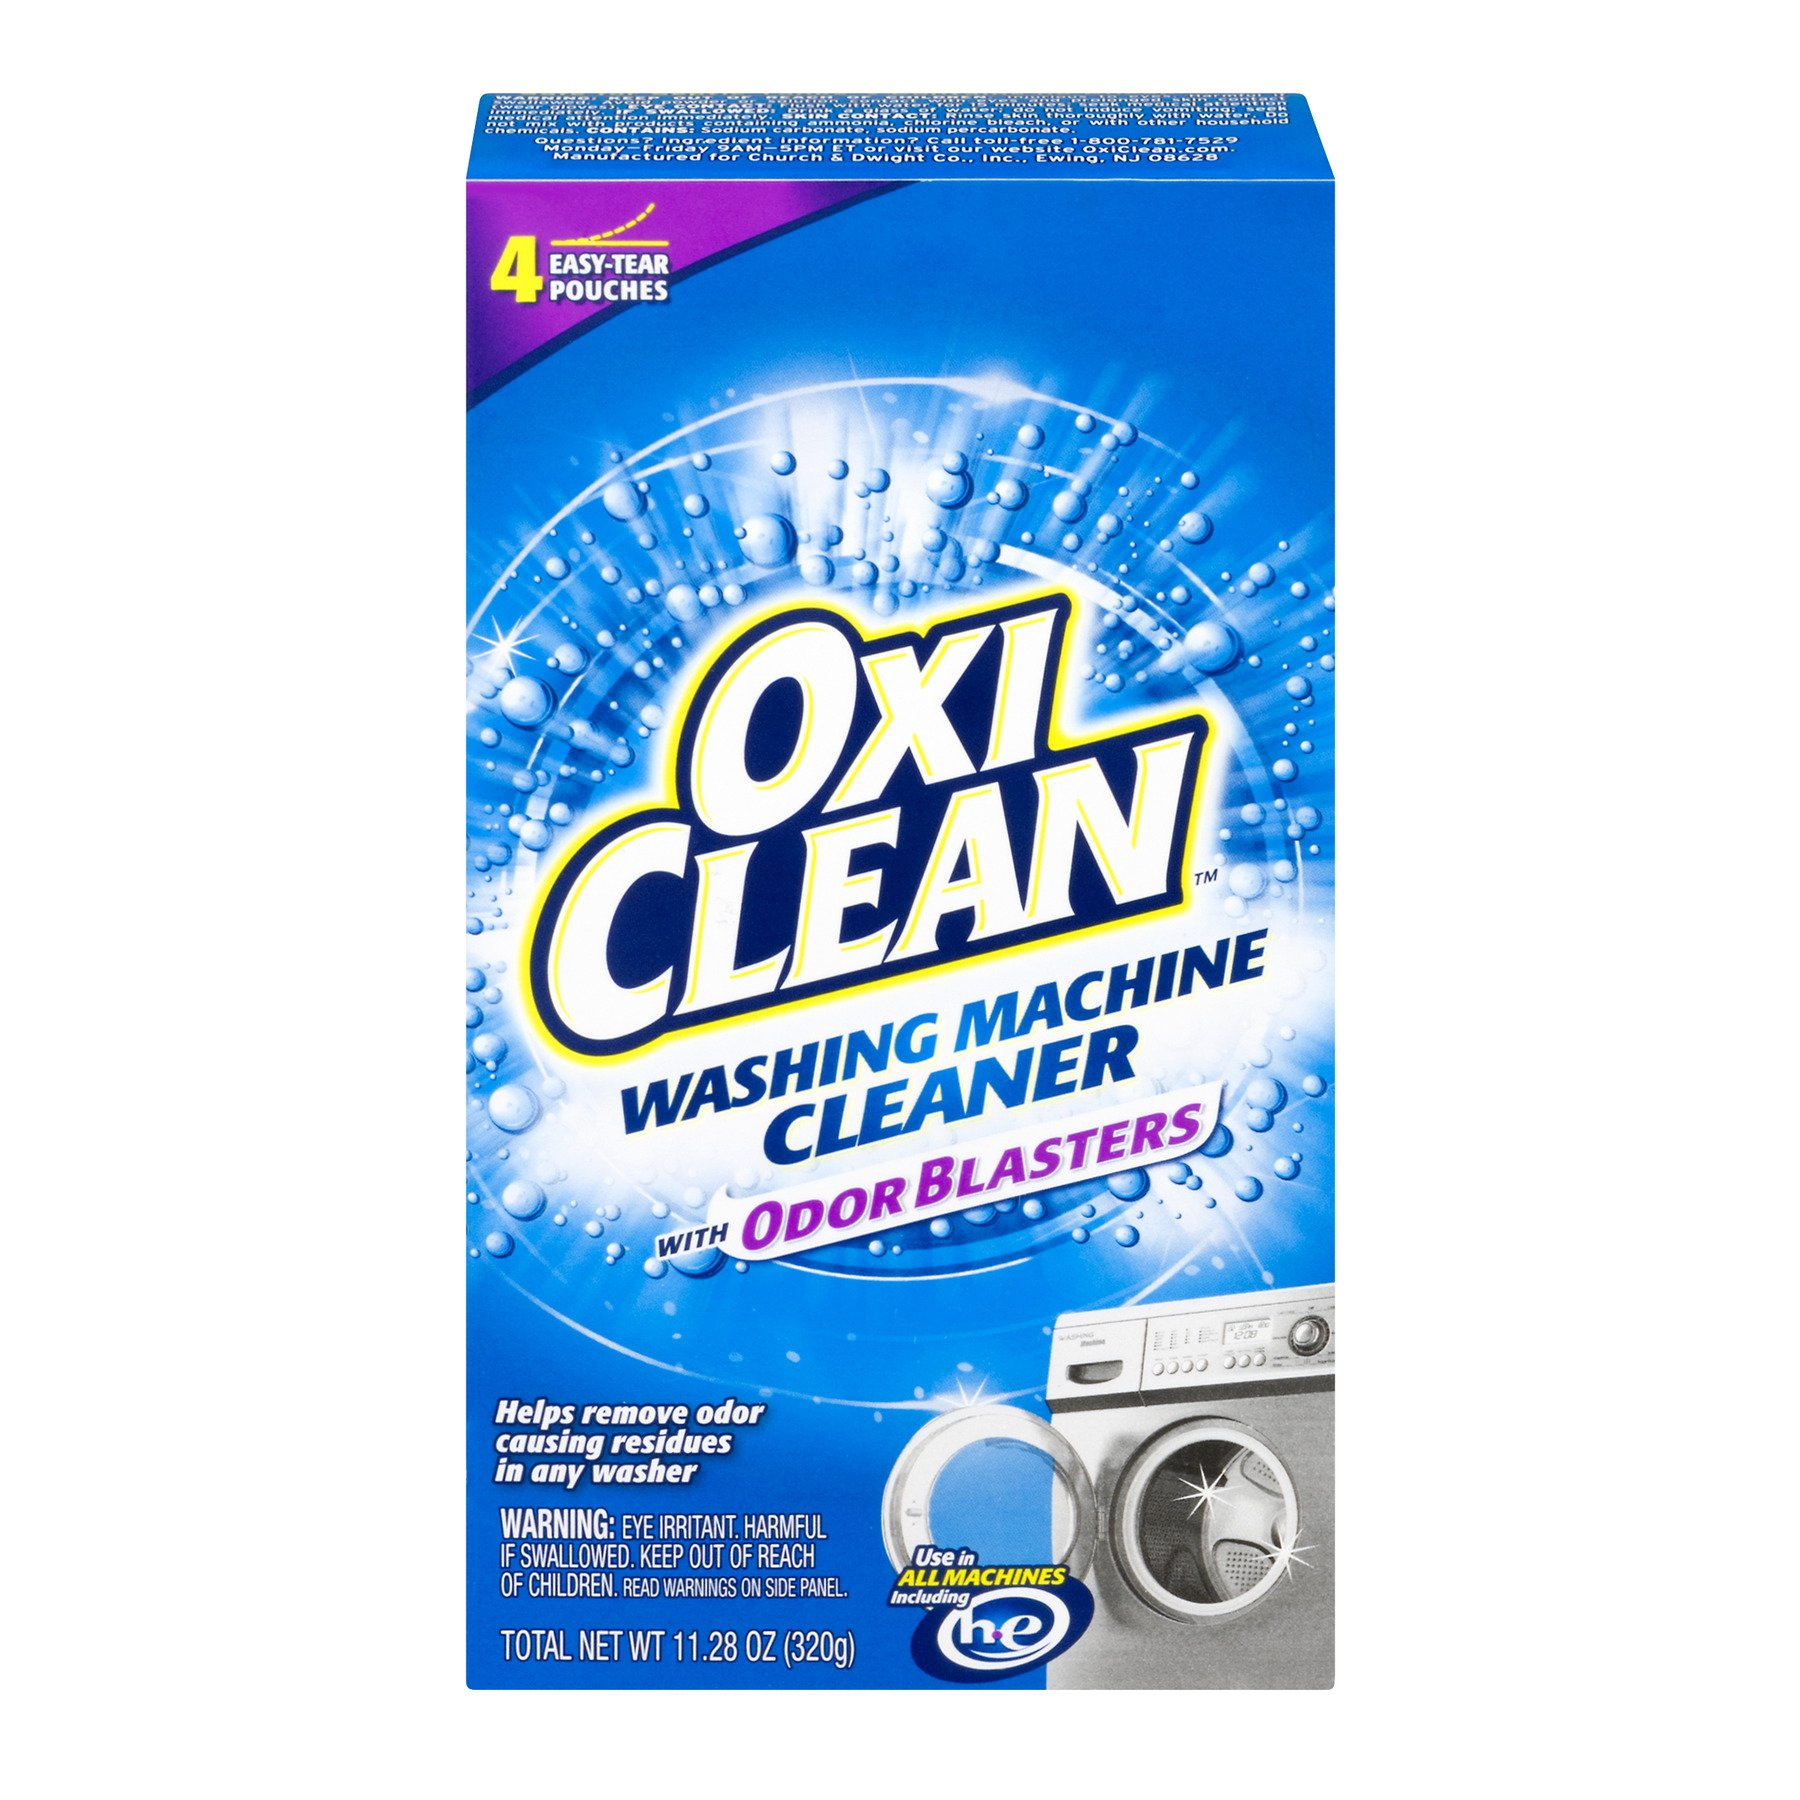 OxiClean Washing Machine Cleaner, 4 Count (3)